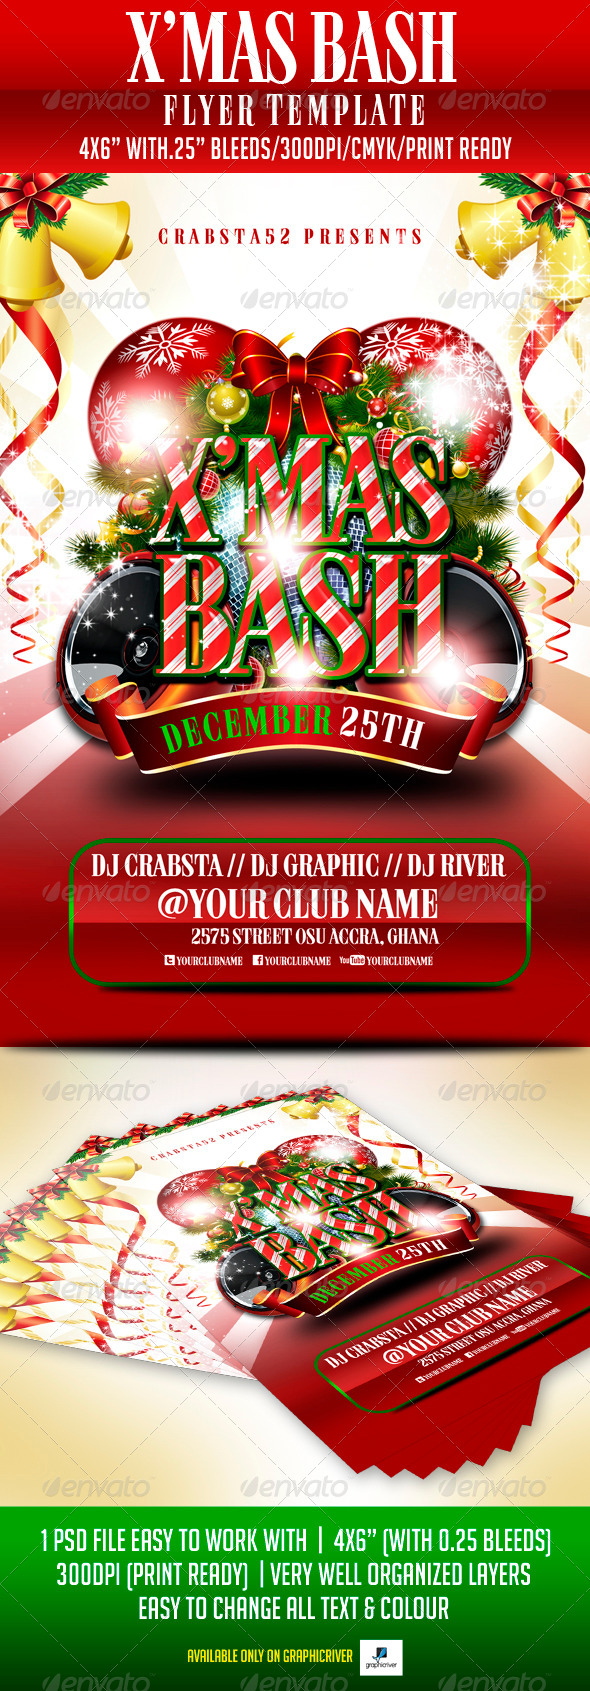 X'mas Bash Flyer Template - Flyers Print Templates